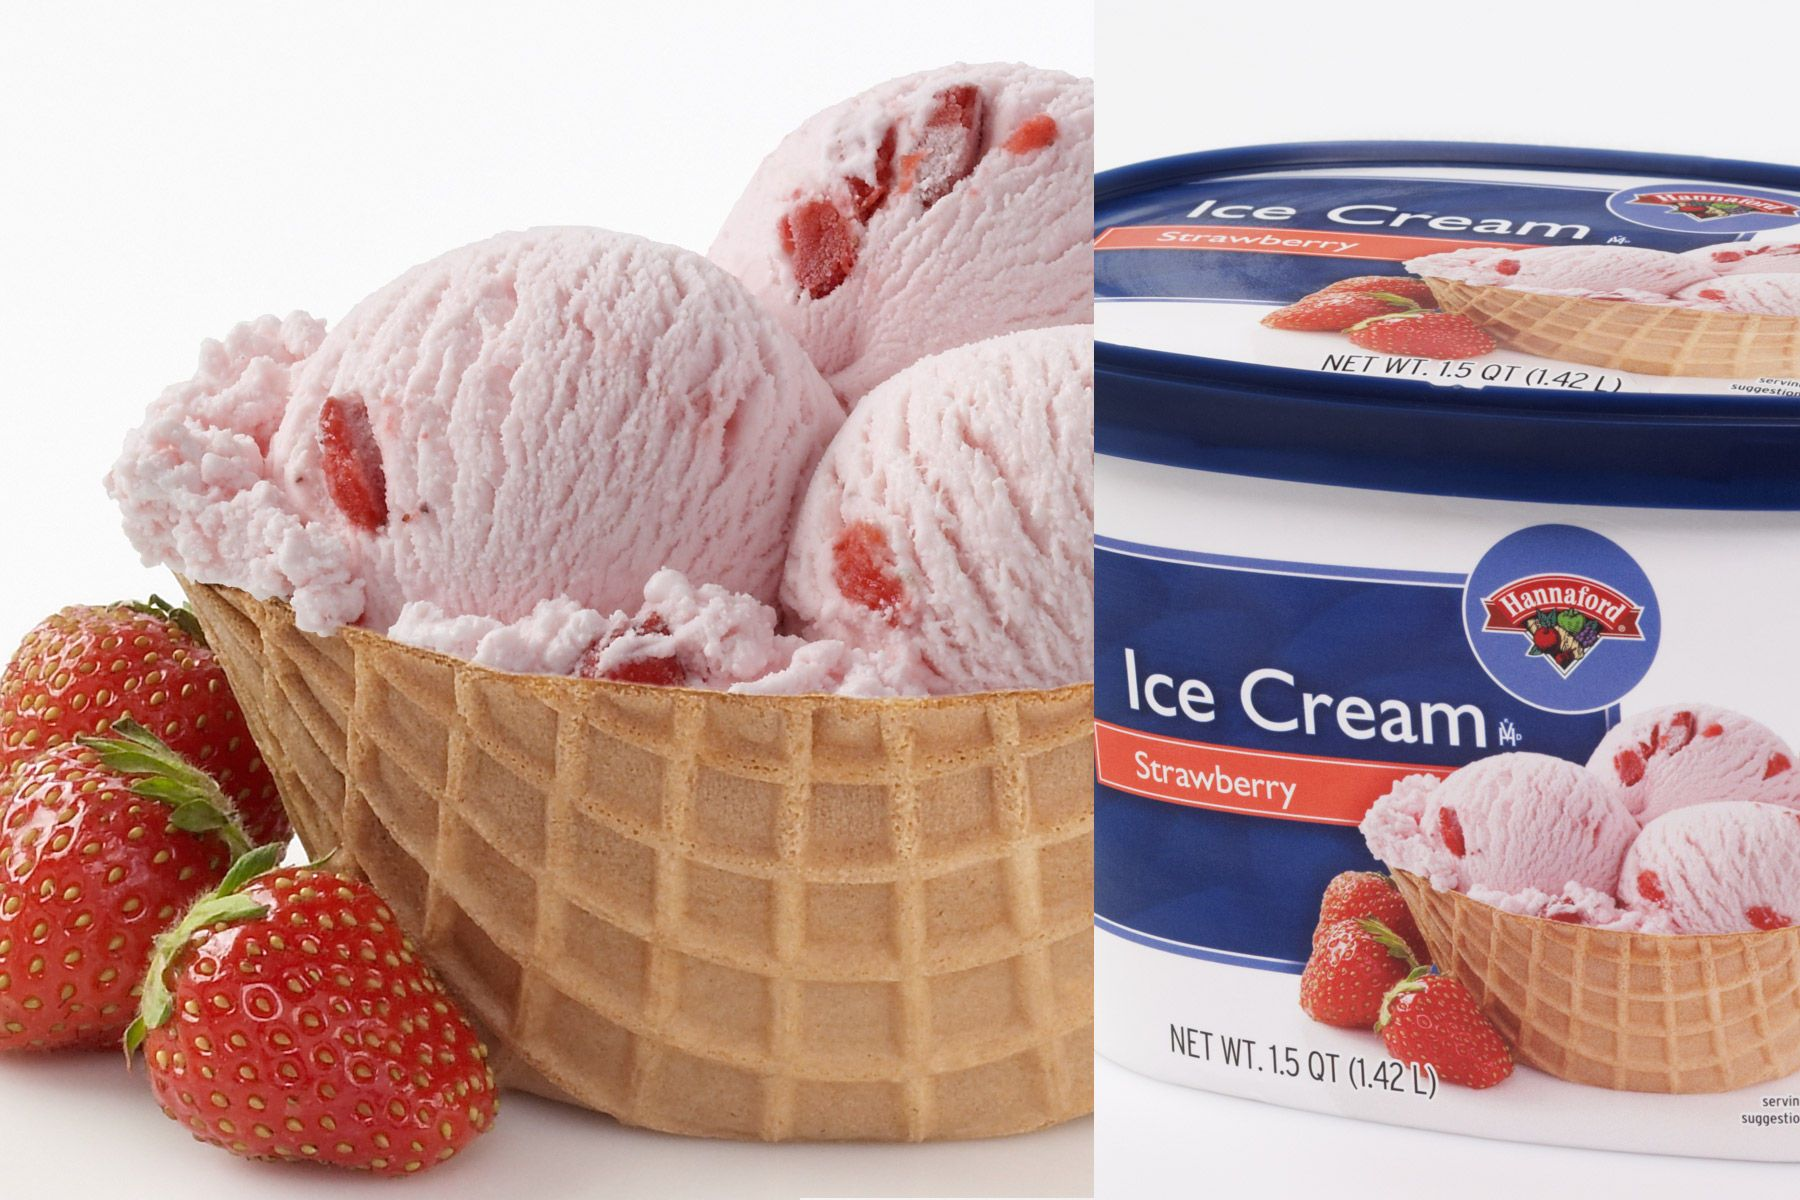 Hannaford Ice Cream Packaging